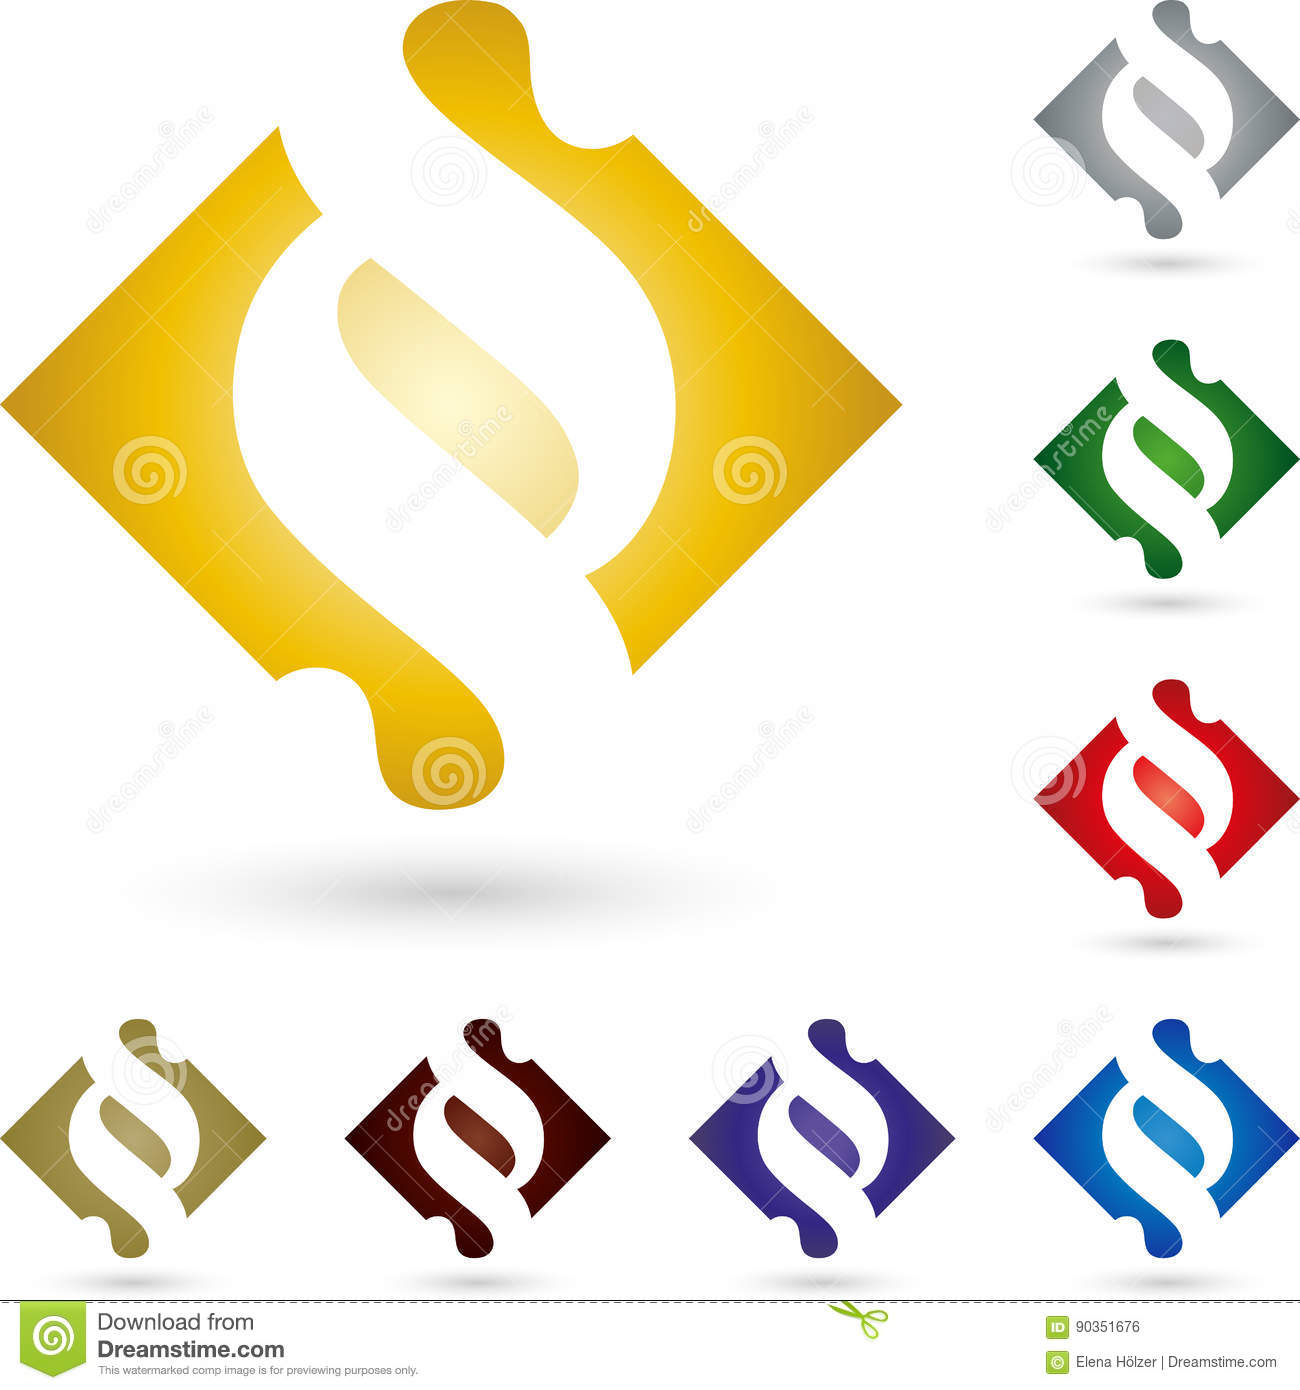 Paragraph signs right and paragraph logo stock vector paragraph signs right and paragraph logo buycottarizona Gallery